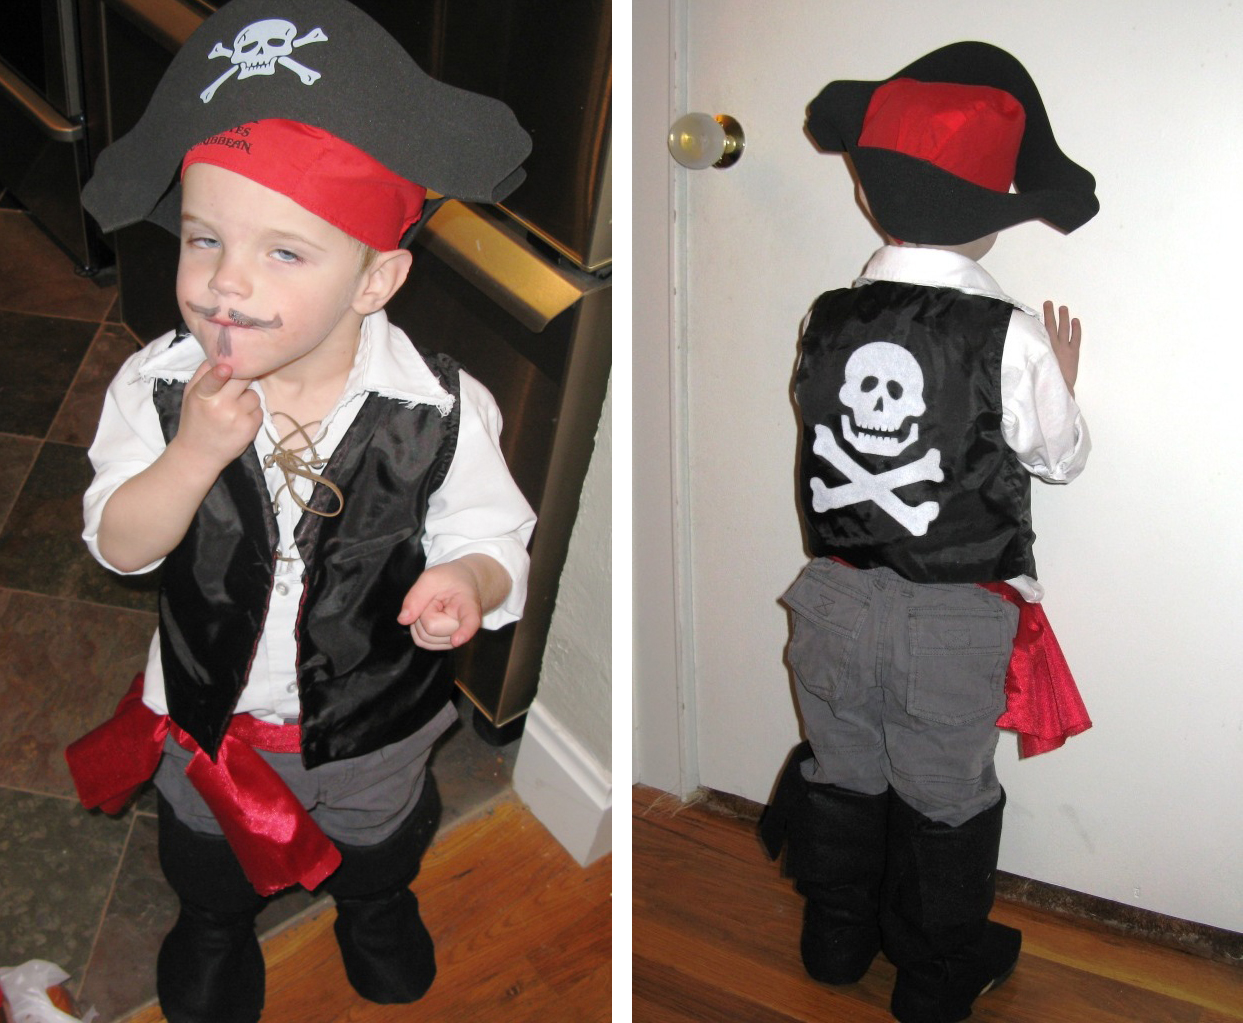 matches. ($ - $) Find great deals on the latest styles of Old navy costume. Compare prices & save money on Kids' Costumes.